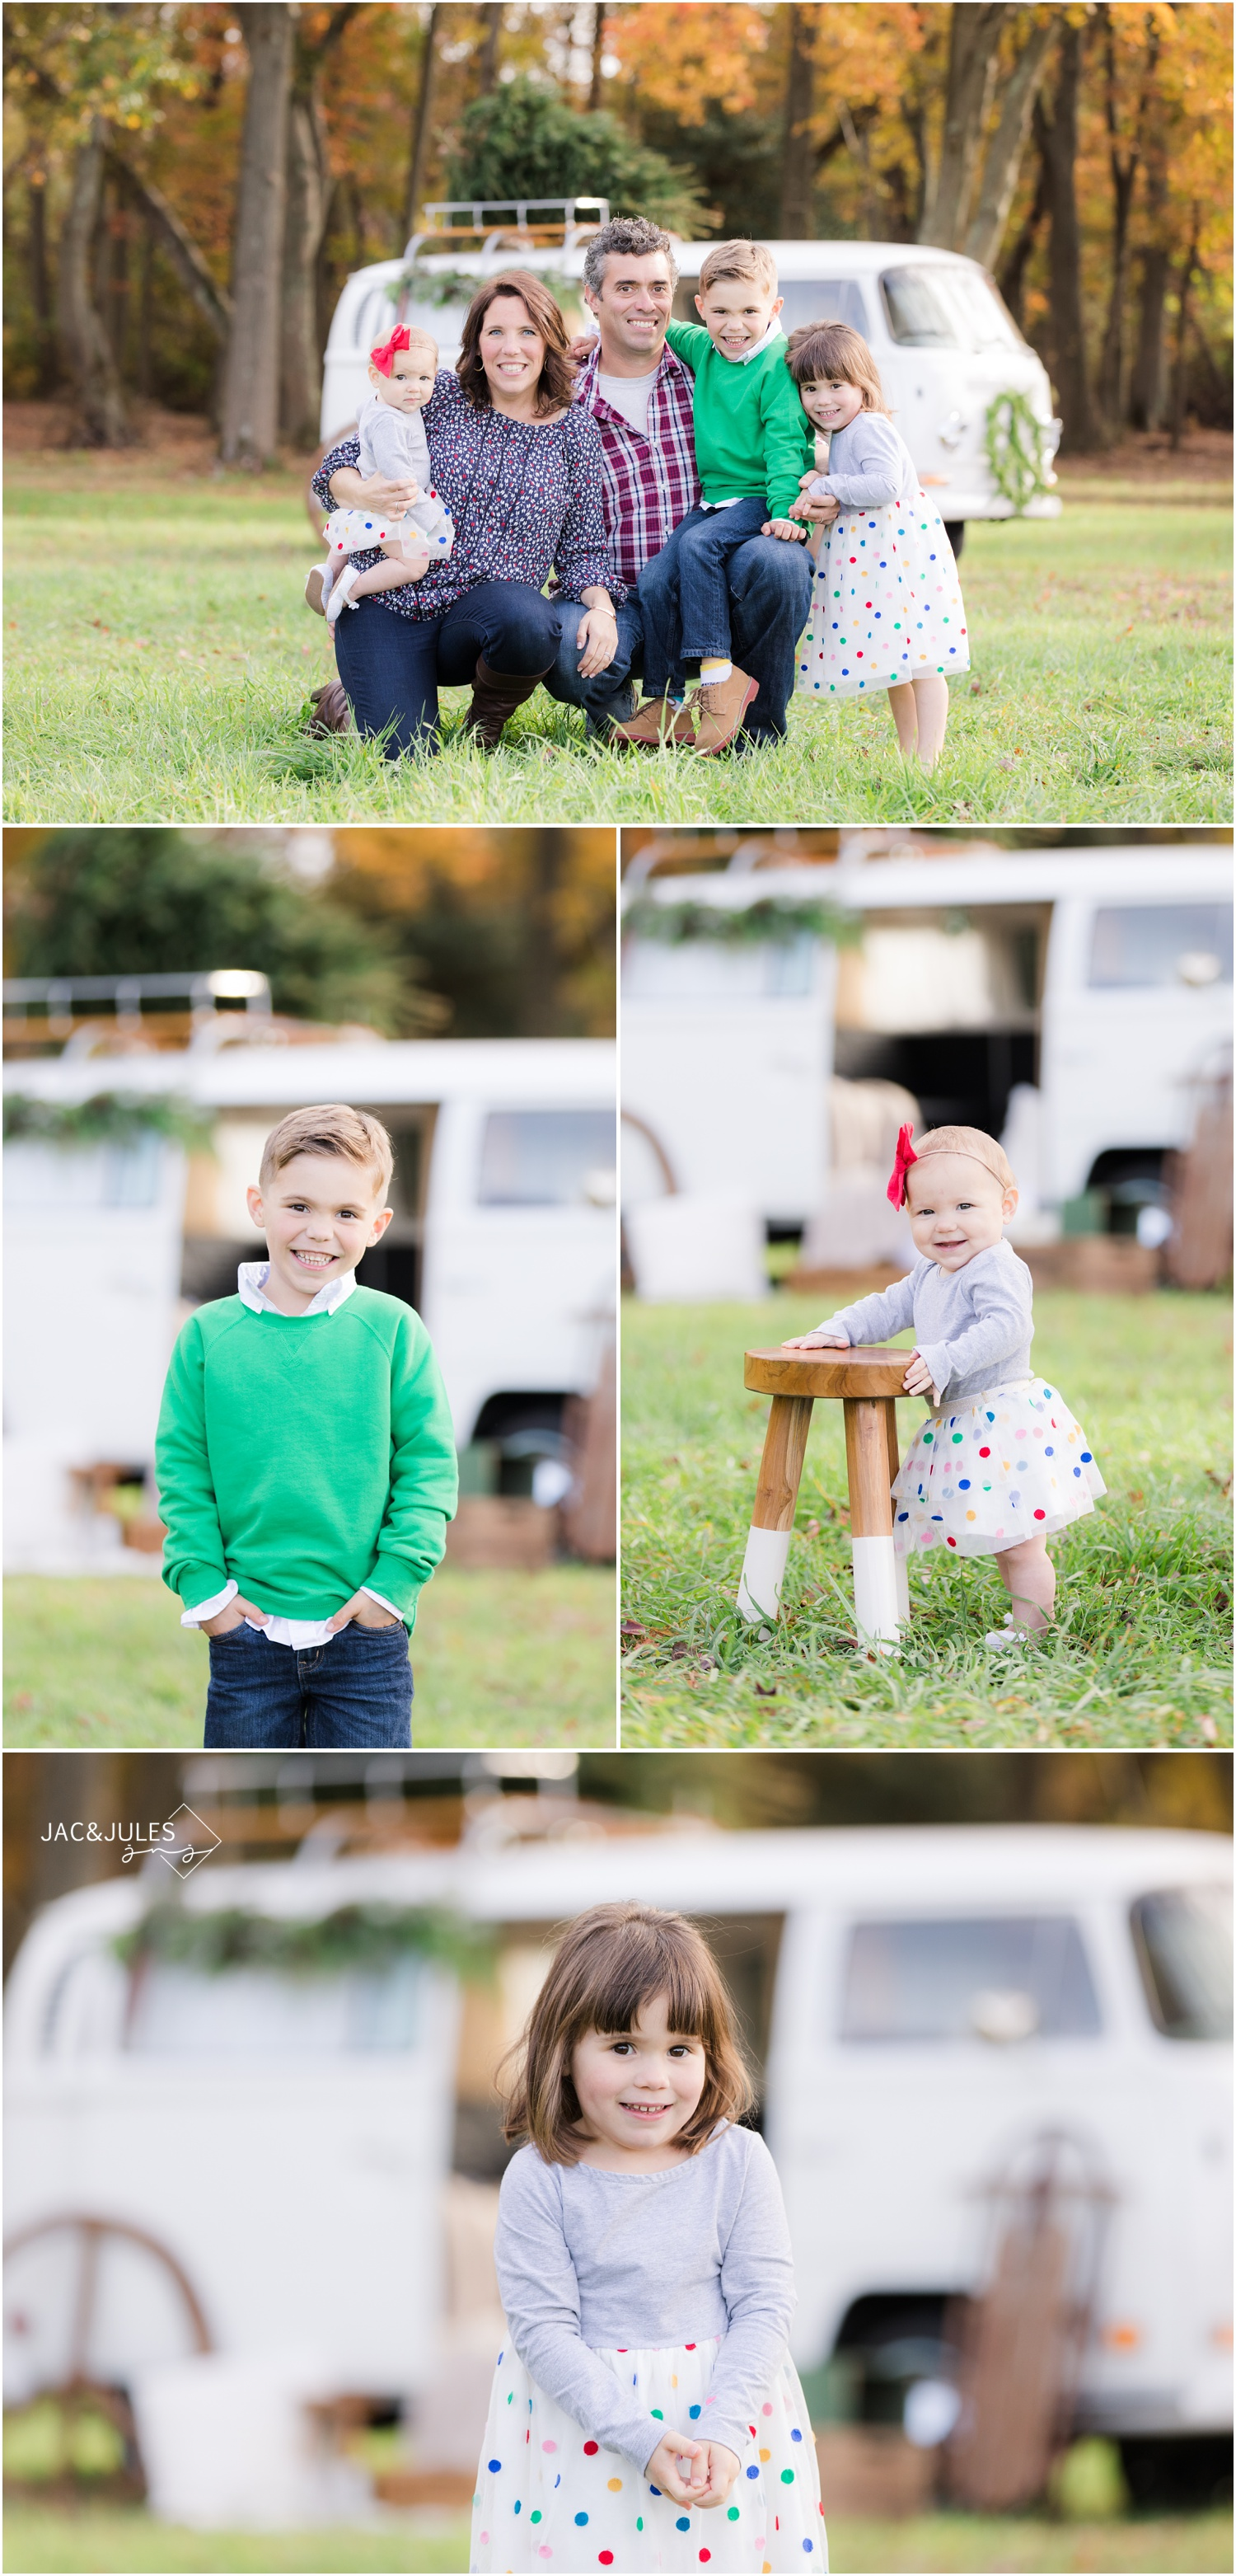 Vintage inspired mini family photo session with VW bus in Freehold, NJ.